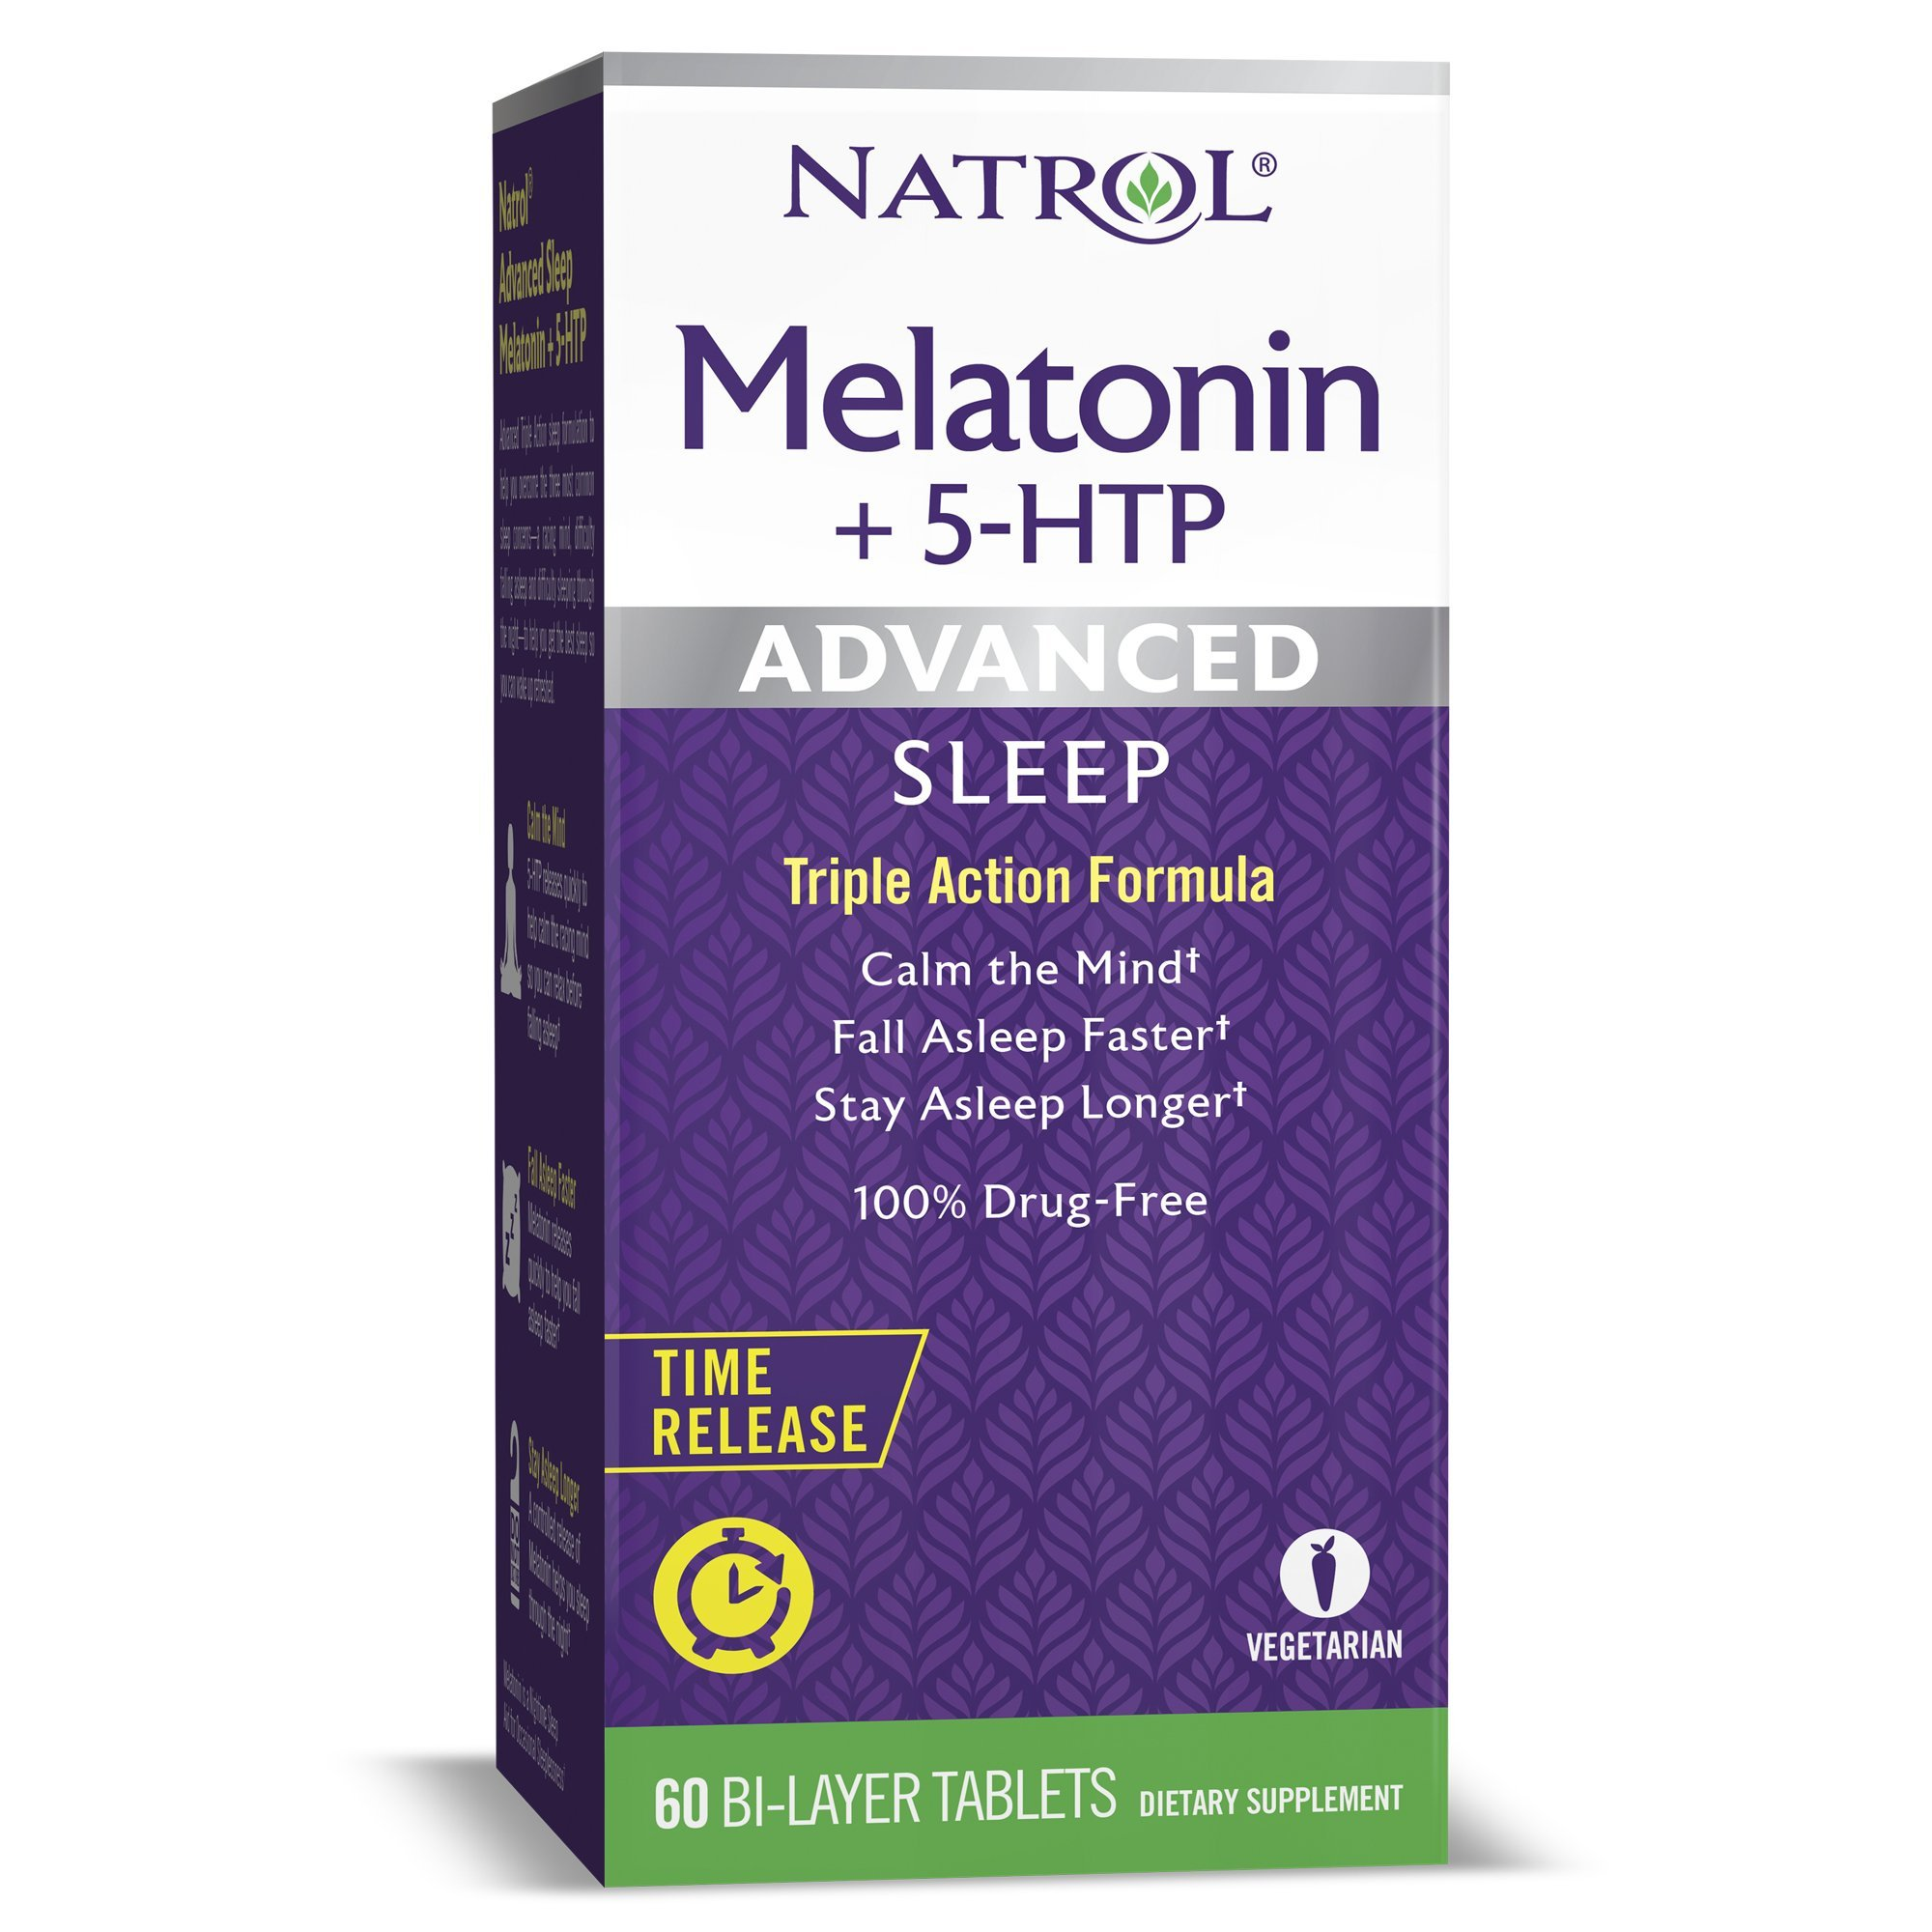 Natrol Melatonin + 5 HTP Advanced Sleep Time Release Bi-Layer Tablets, Triple-